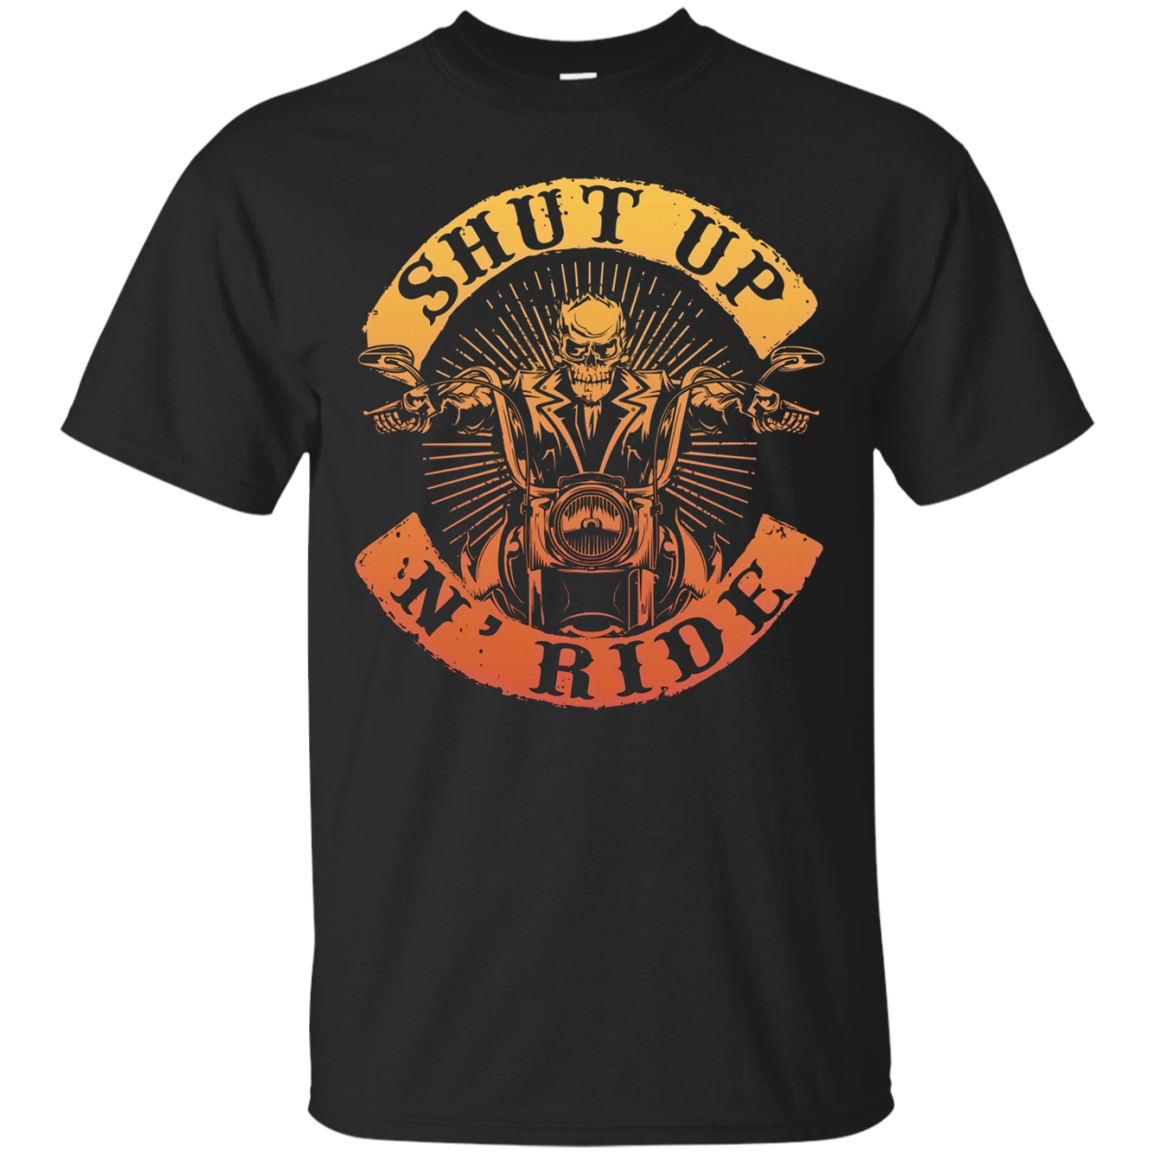 Shut Up N Ride Skeleton Biker Motorcycle Rider Skull T Shirt